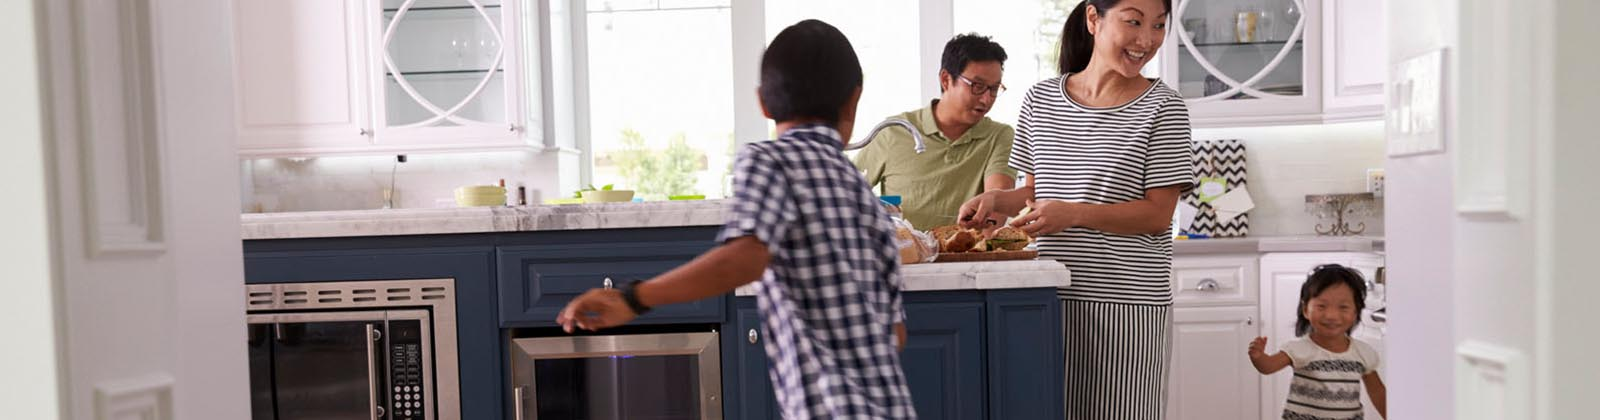 family in a kitchen smiling while two young children play